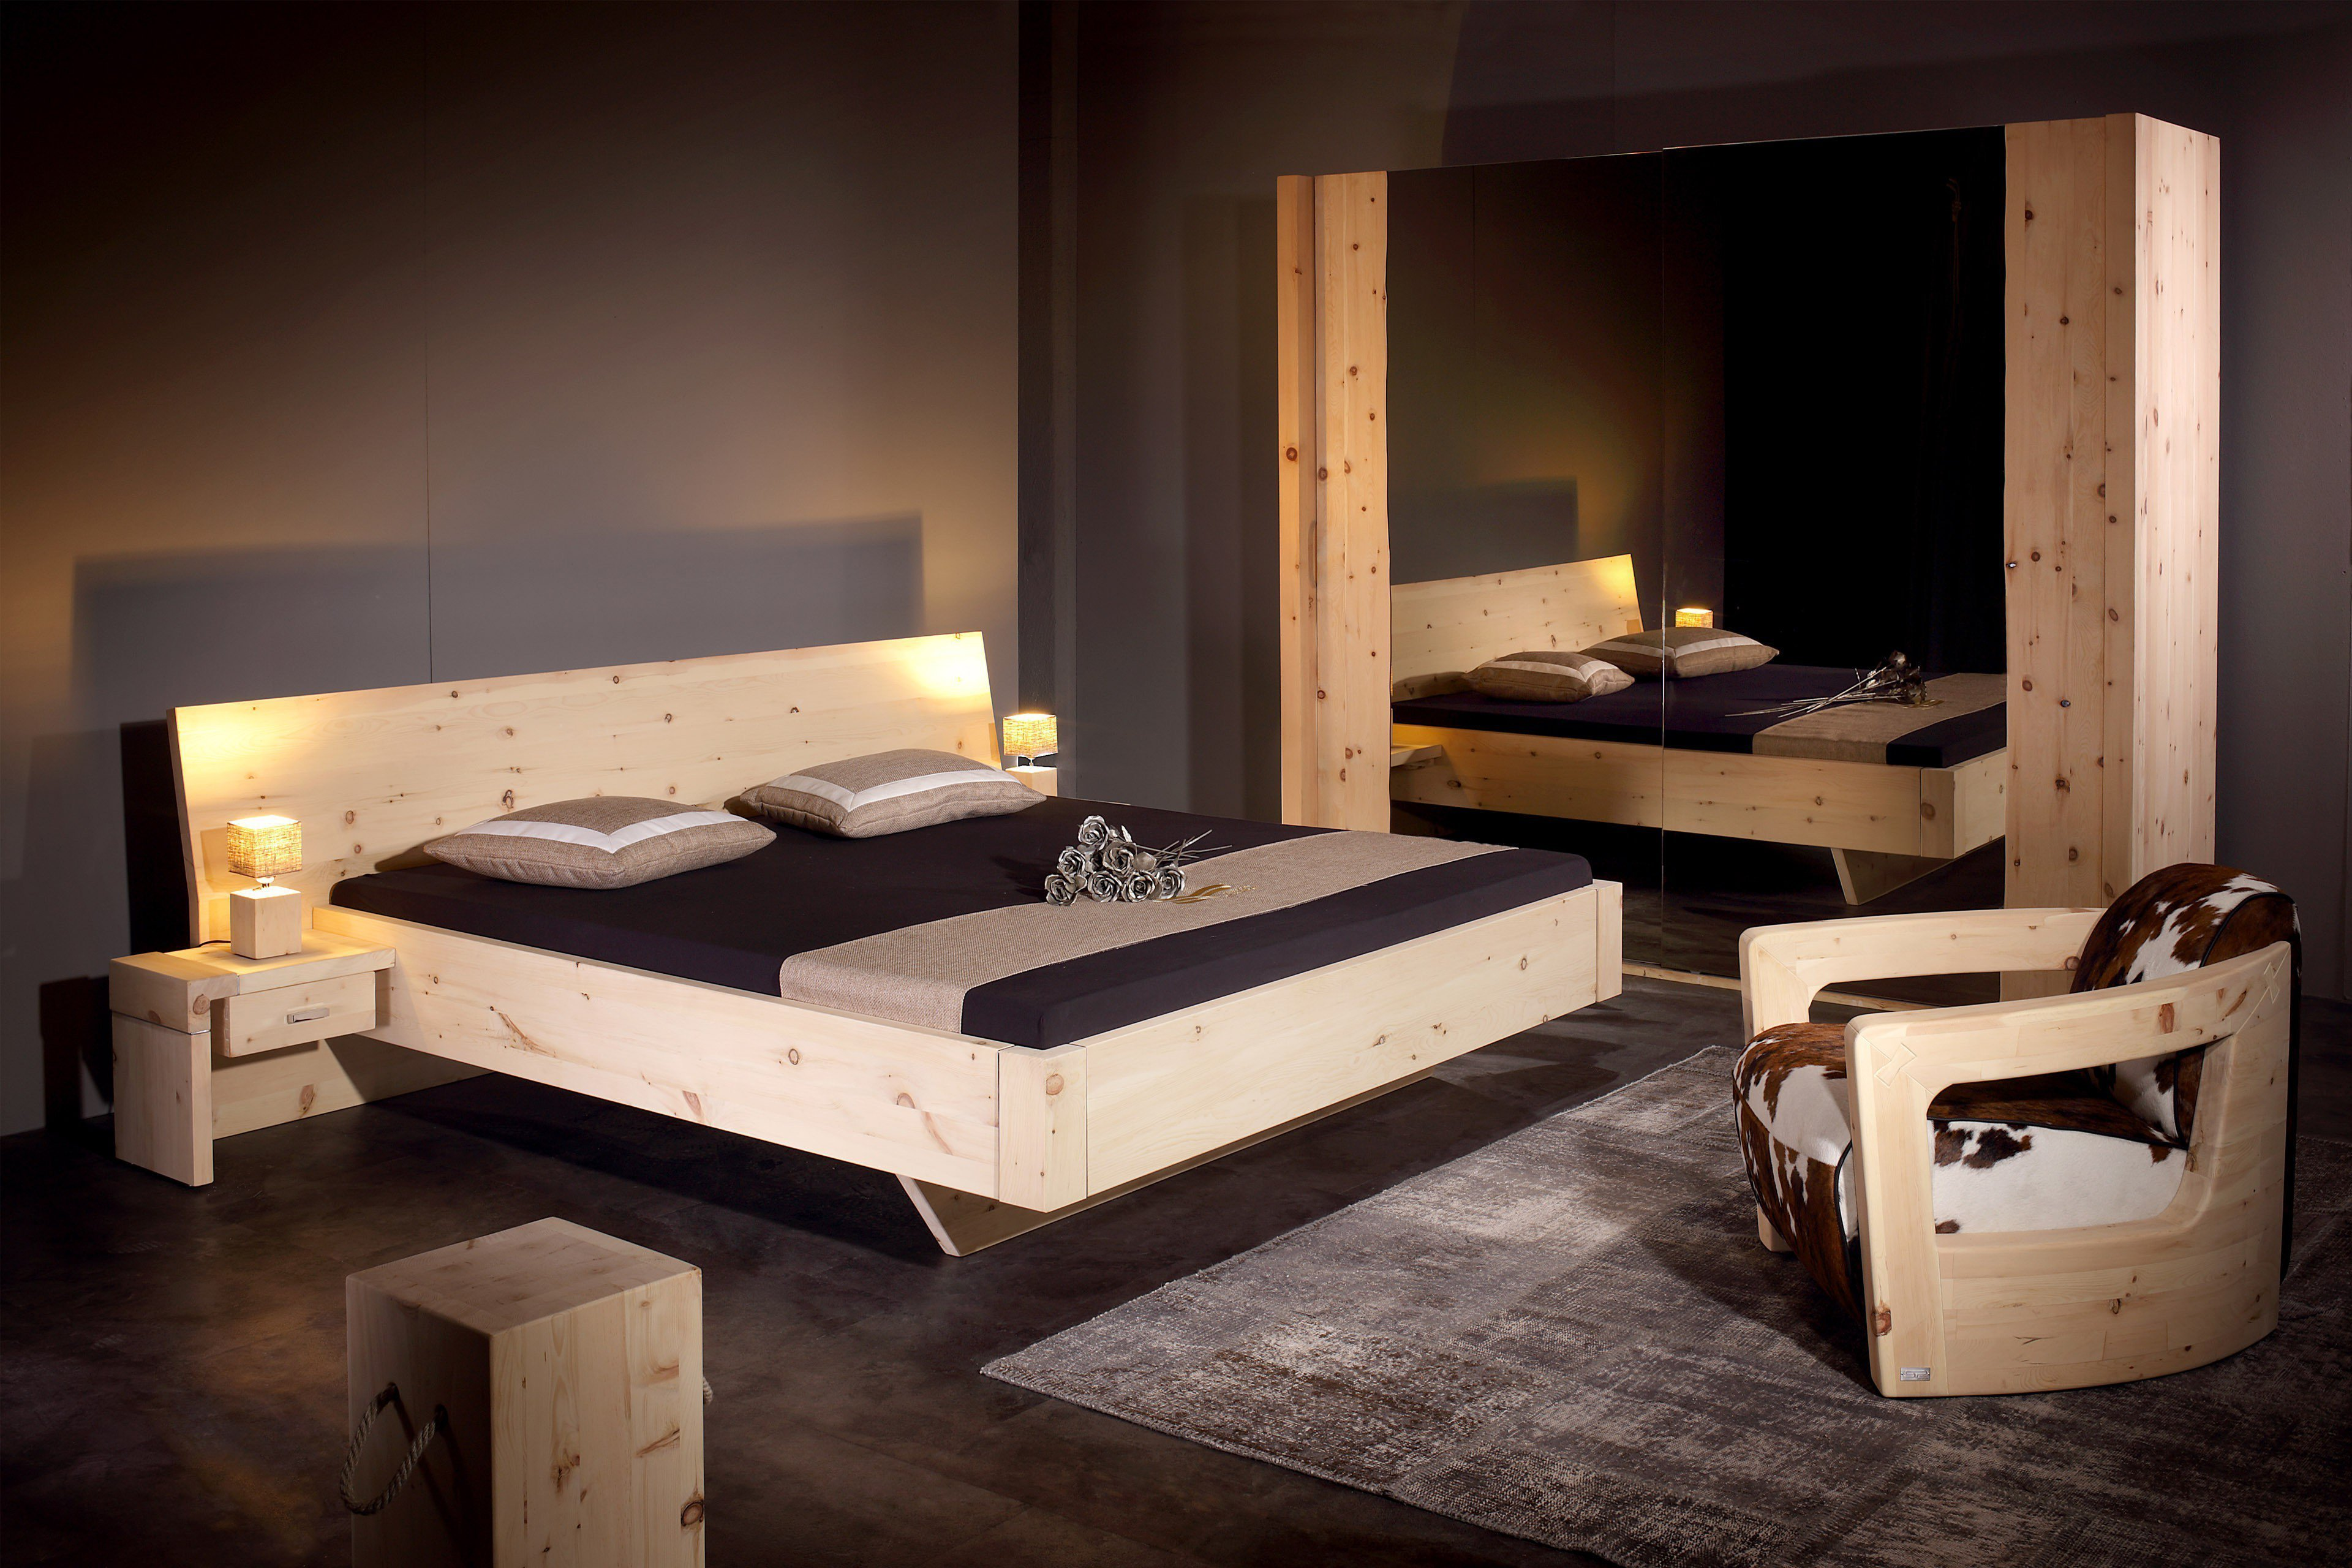 sprenger m bel schlafzimmer alpina zirbe m bel letz ihr online shop. Black Bedroom Furniture Sets. Home Design Ideas